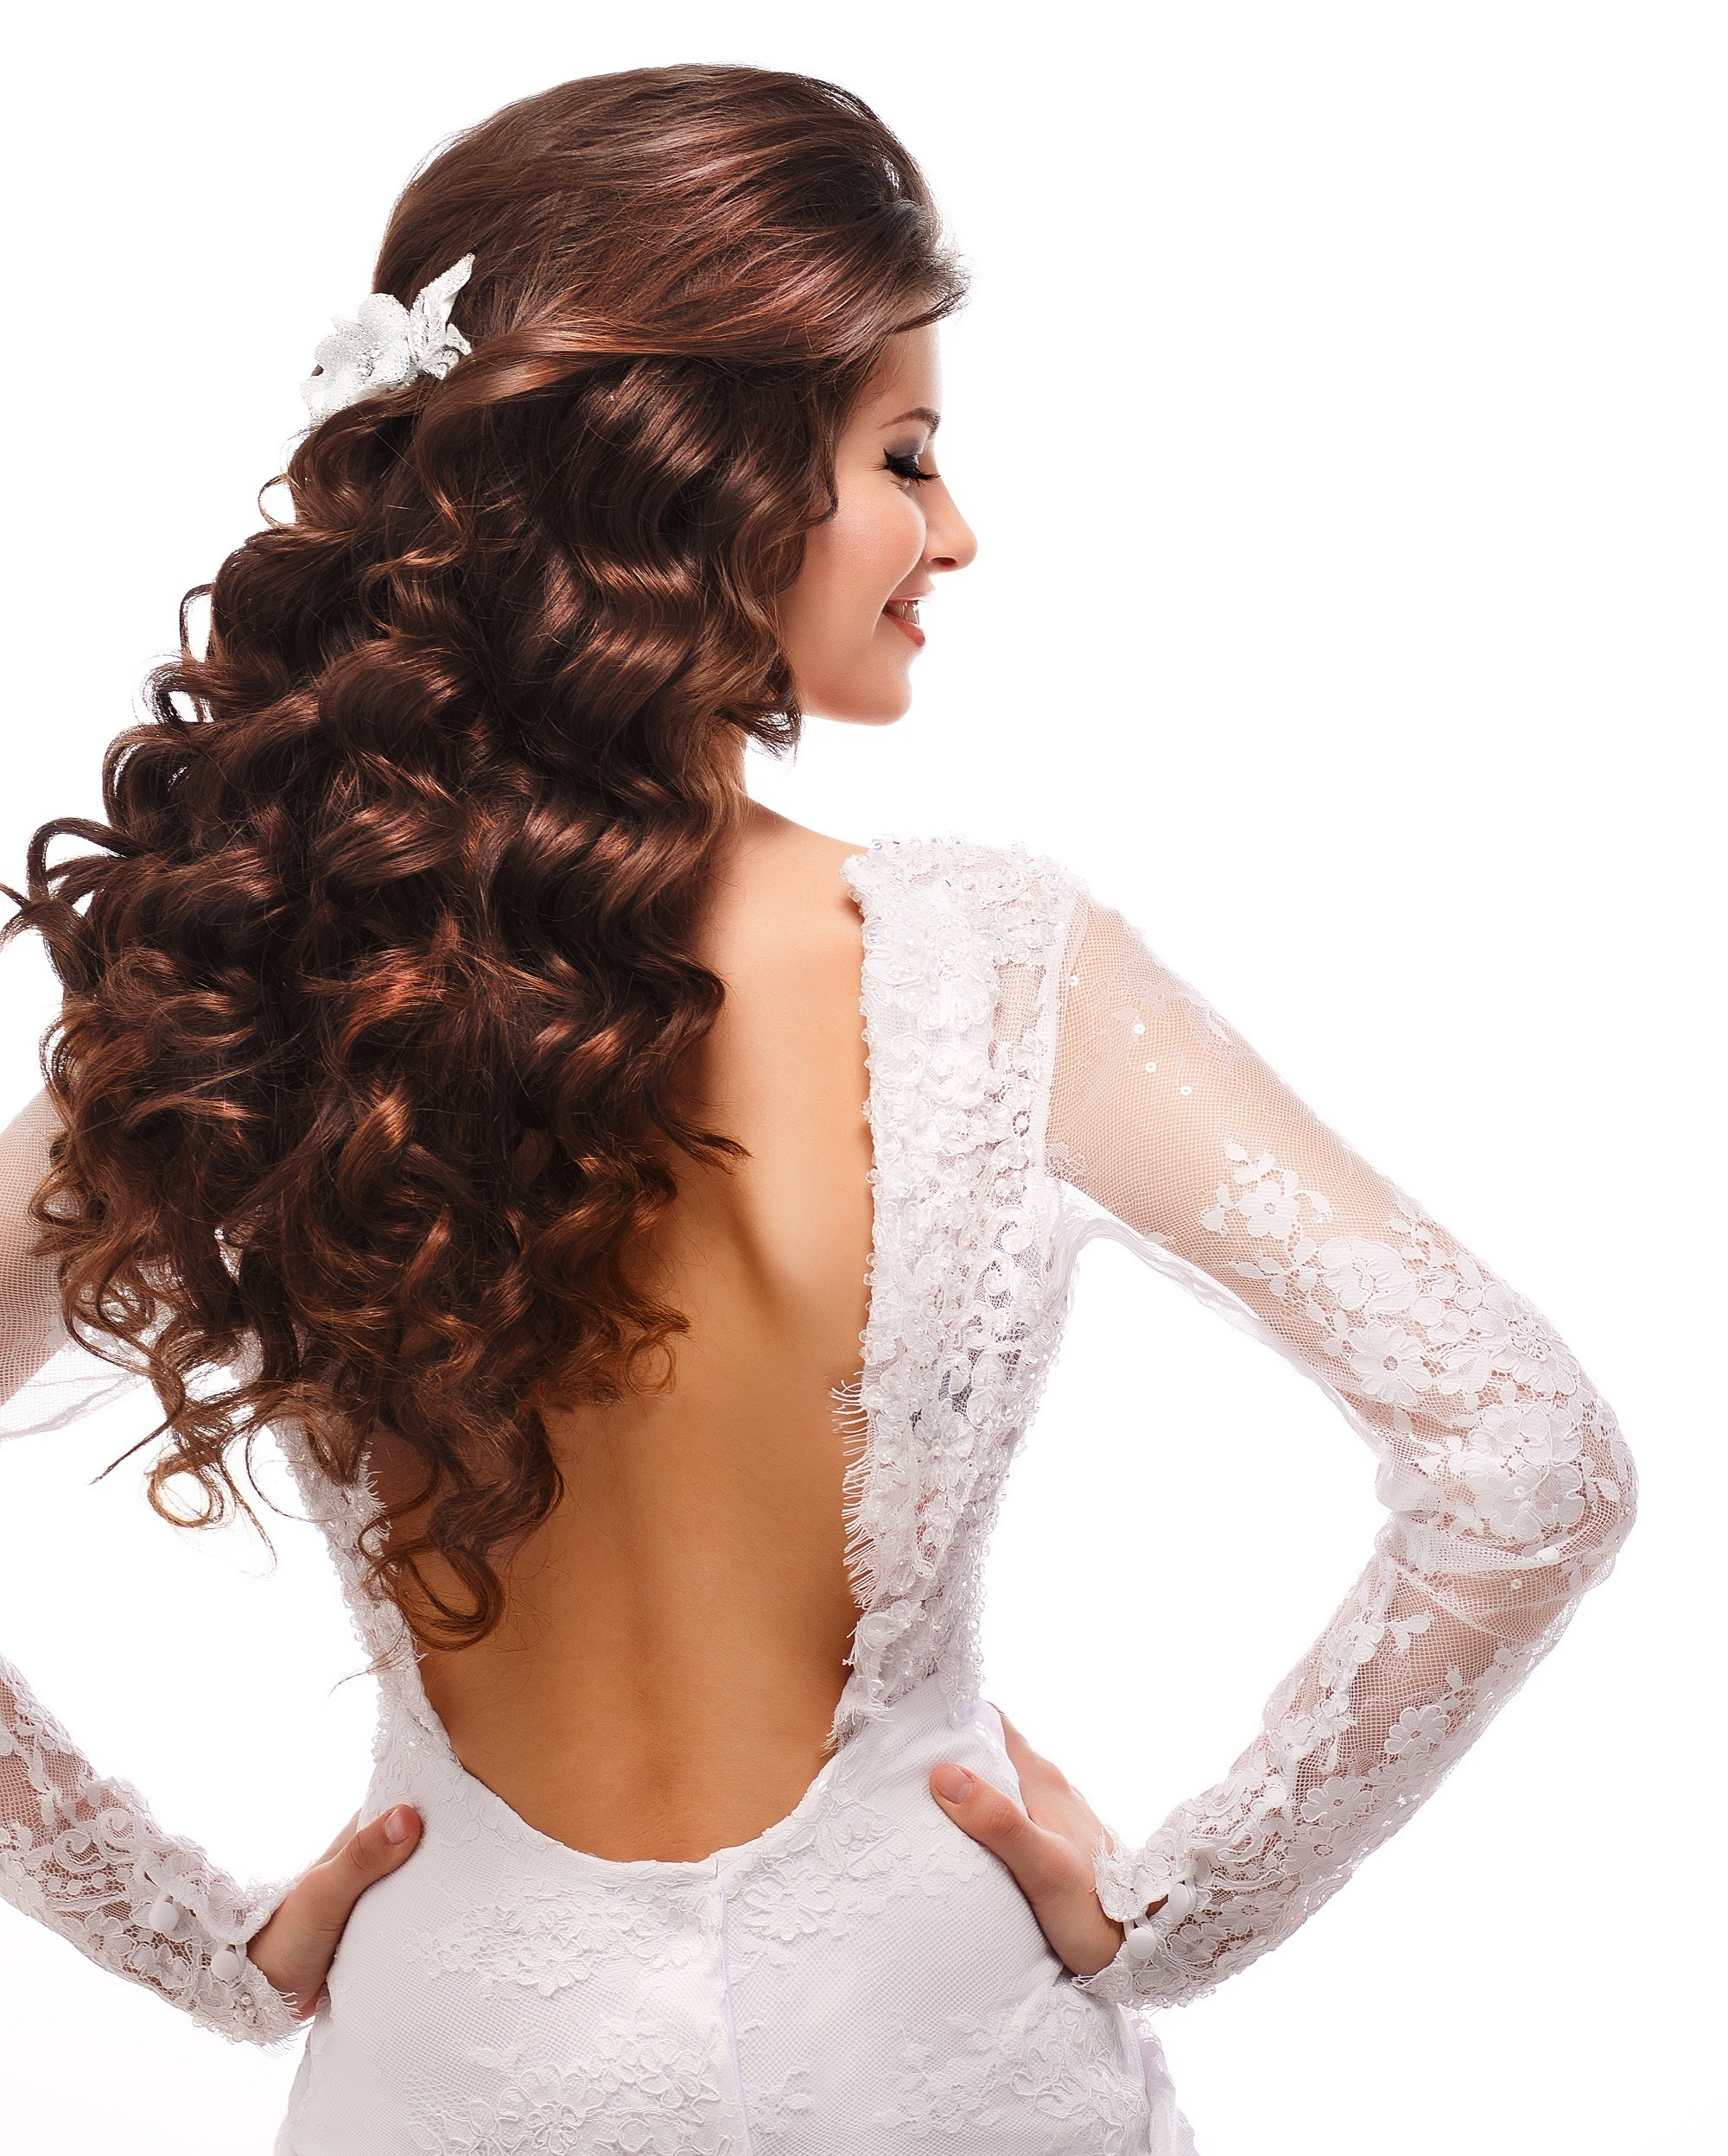 Curly wedding hairstyles half updo